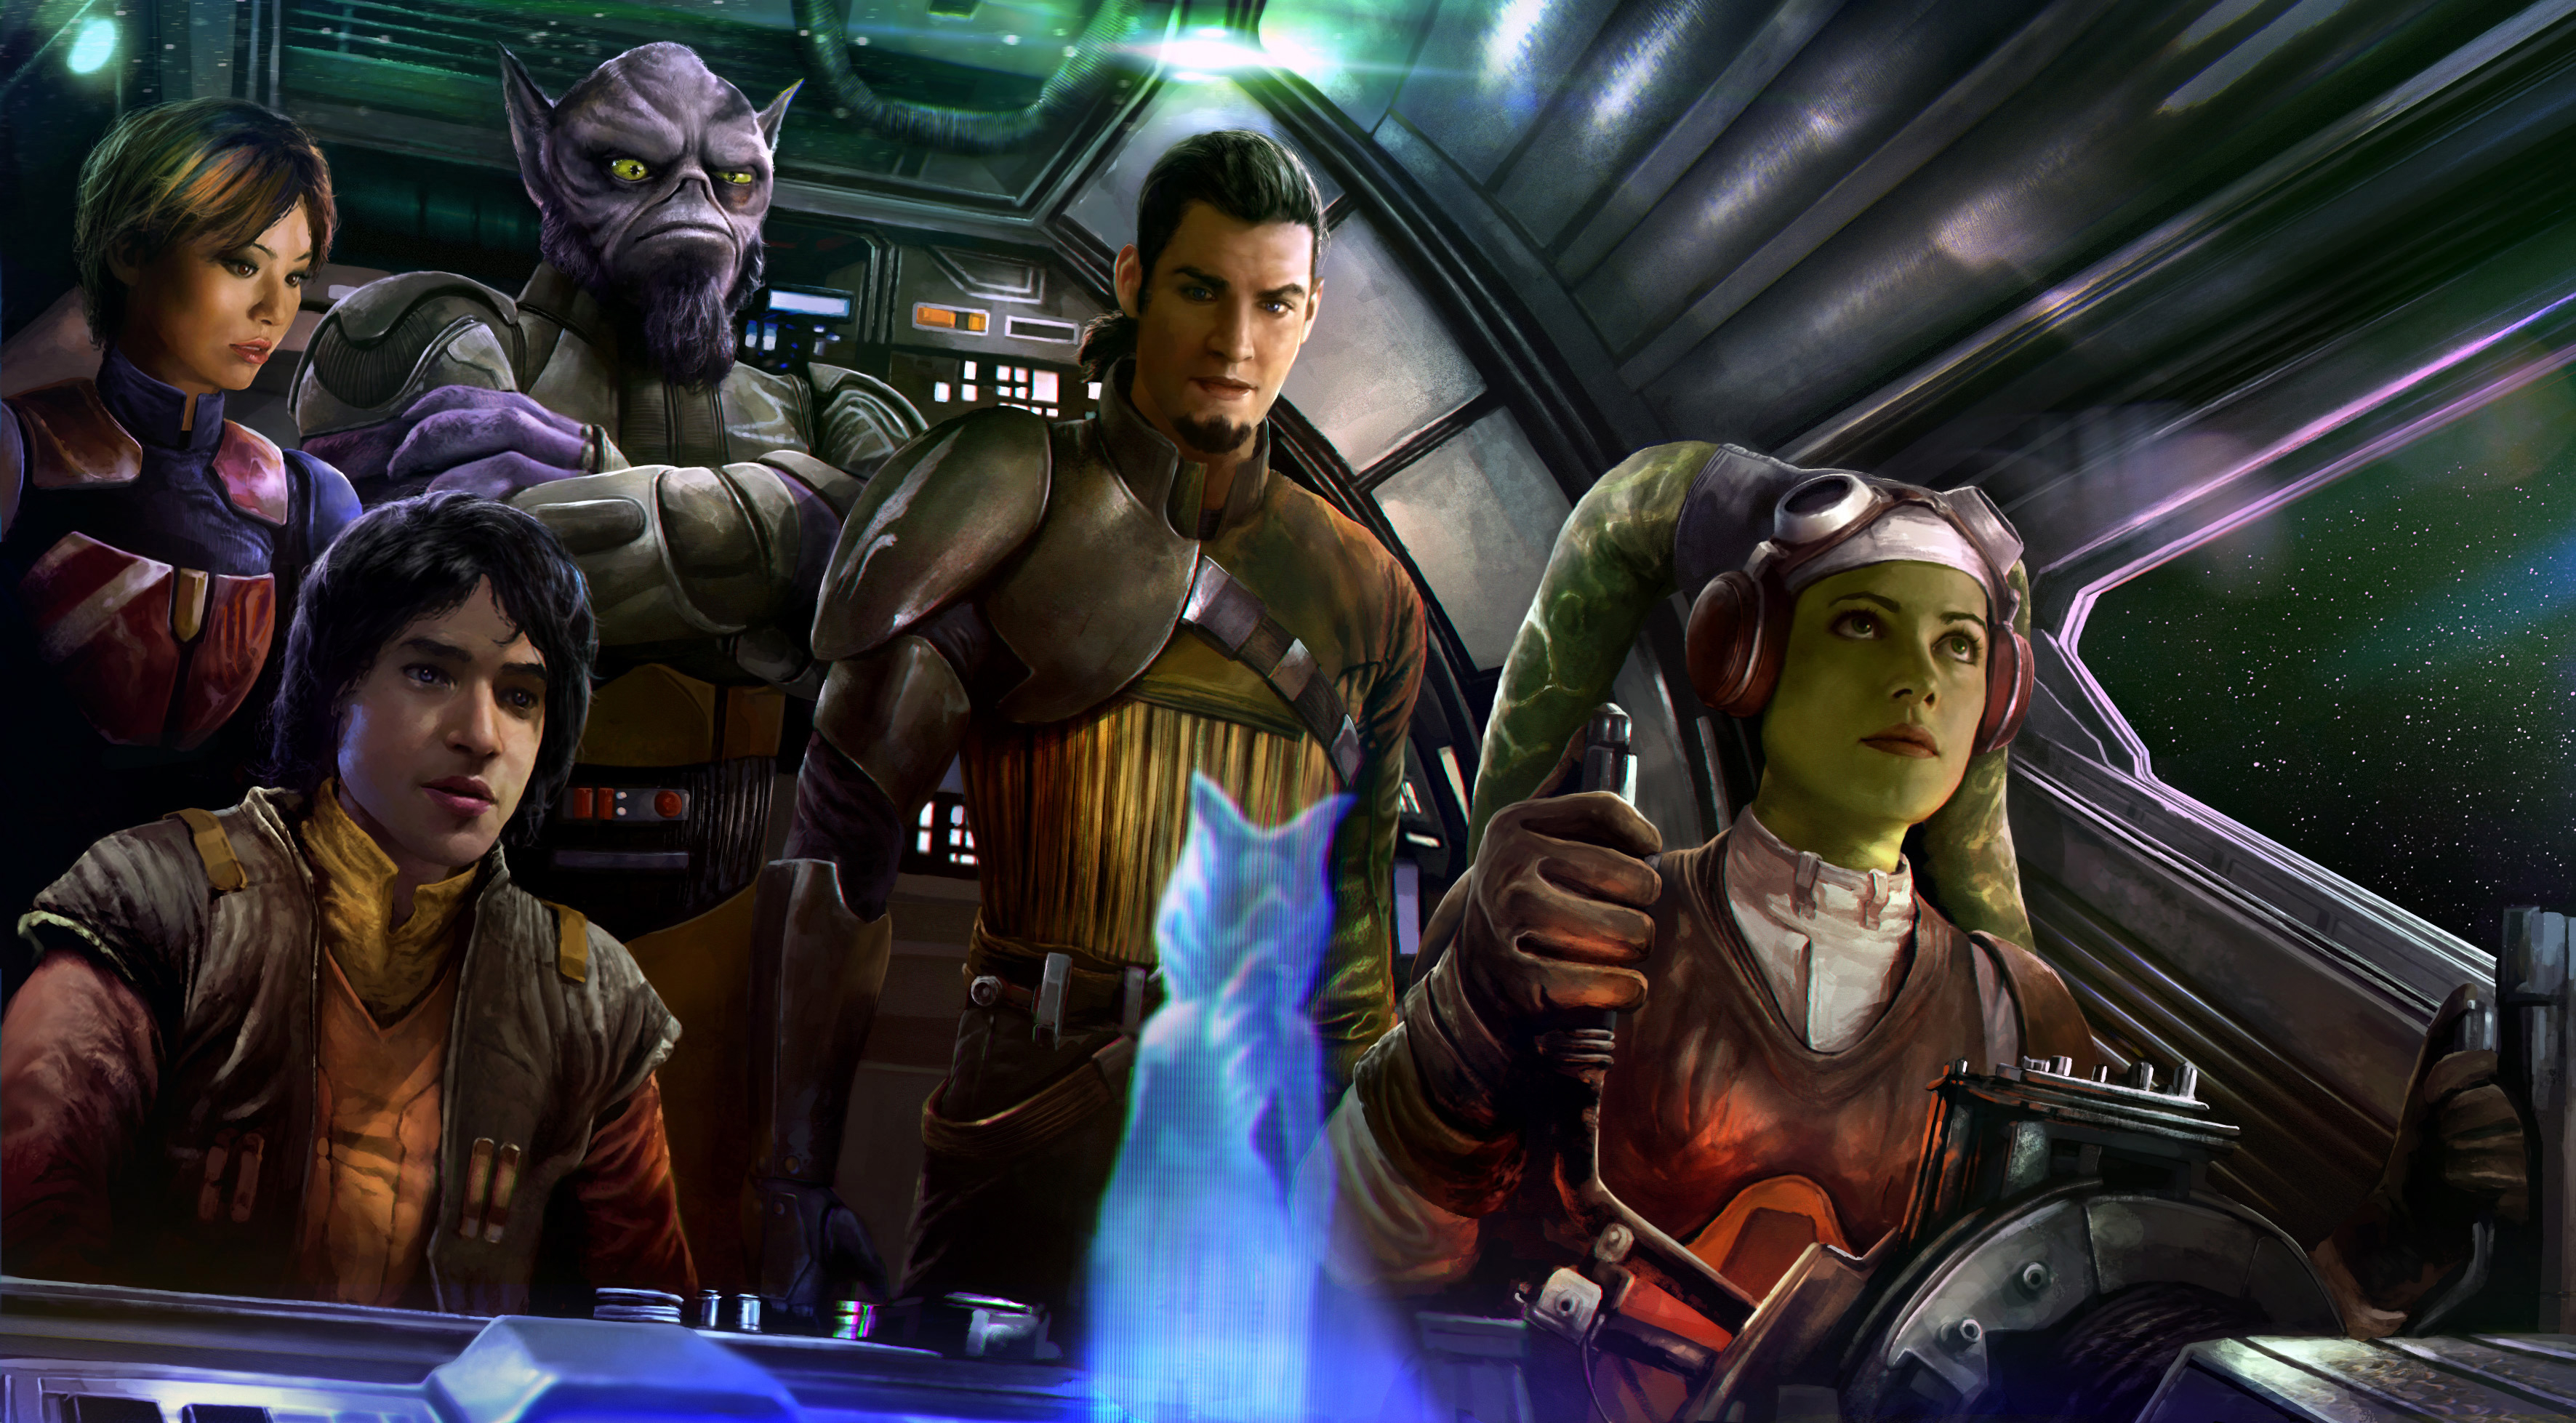 star wars rebels wallpapers, pictures, images